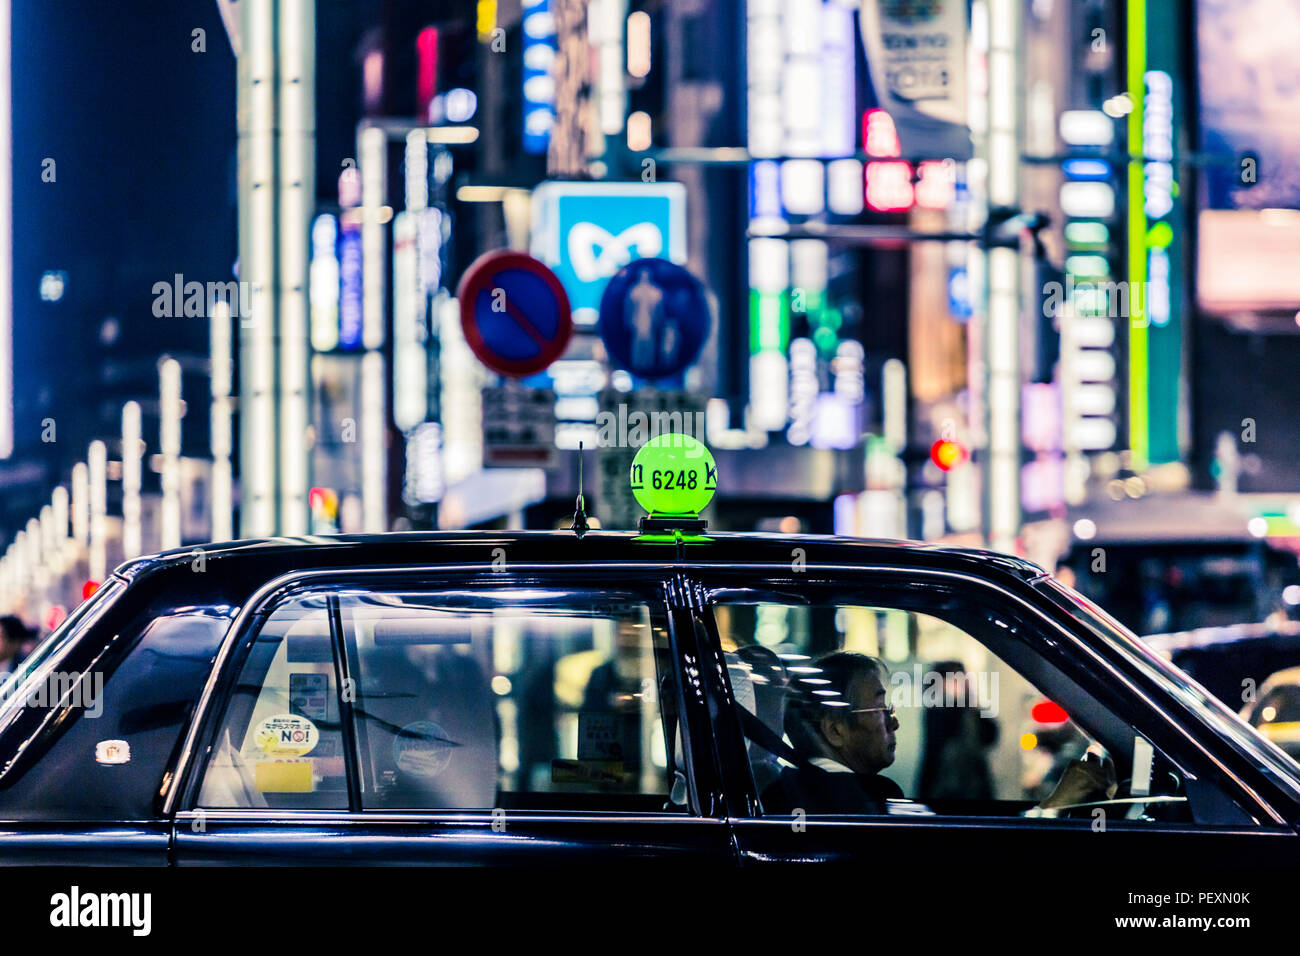 Taxi on street in Ginza district, Tokyo, Japan - Stock Image